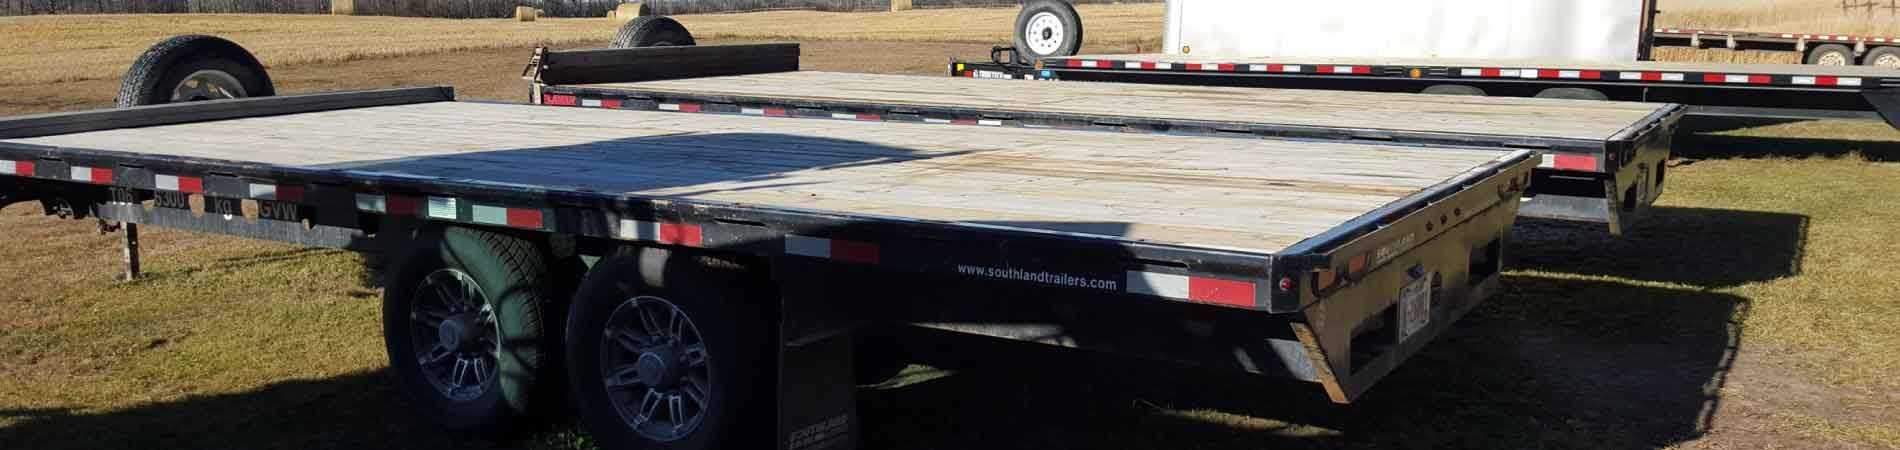 Trailer bed | trucking services Edmonton